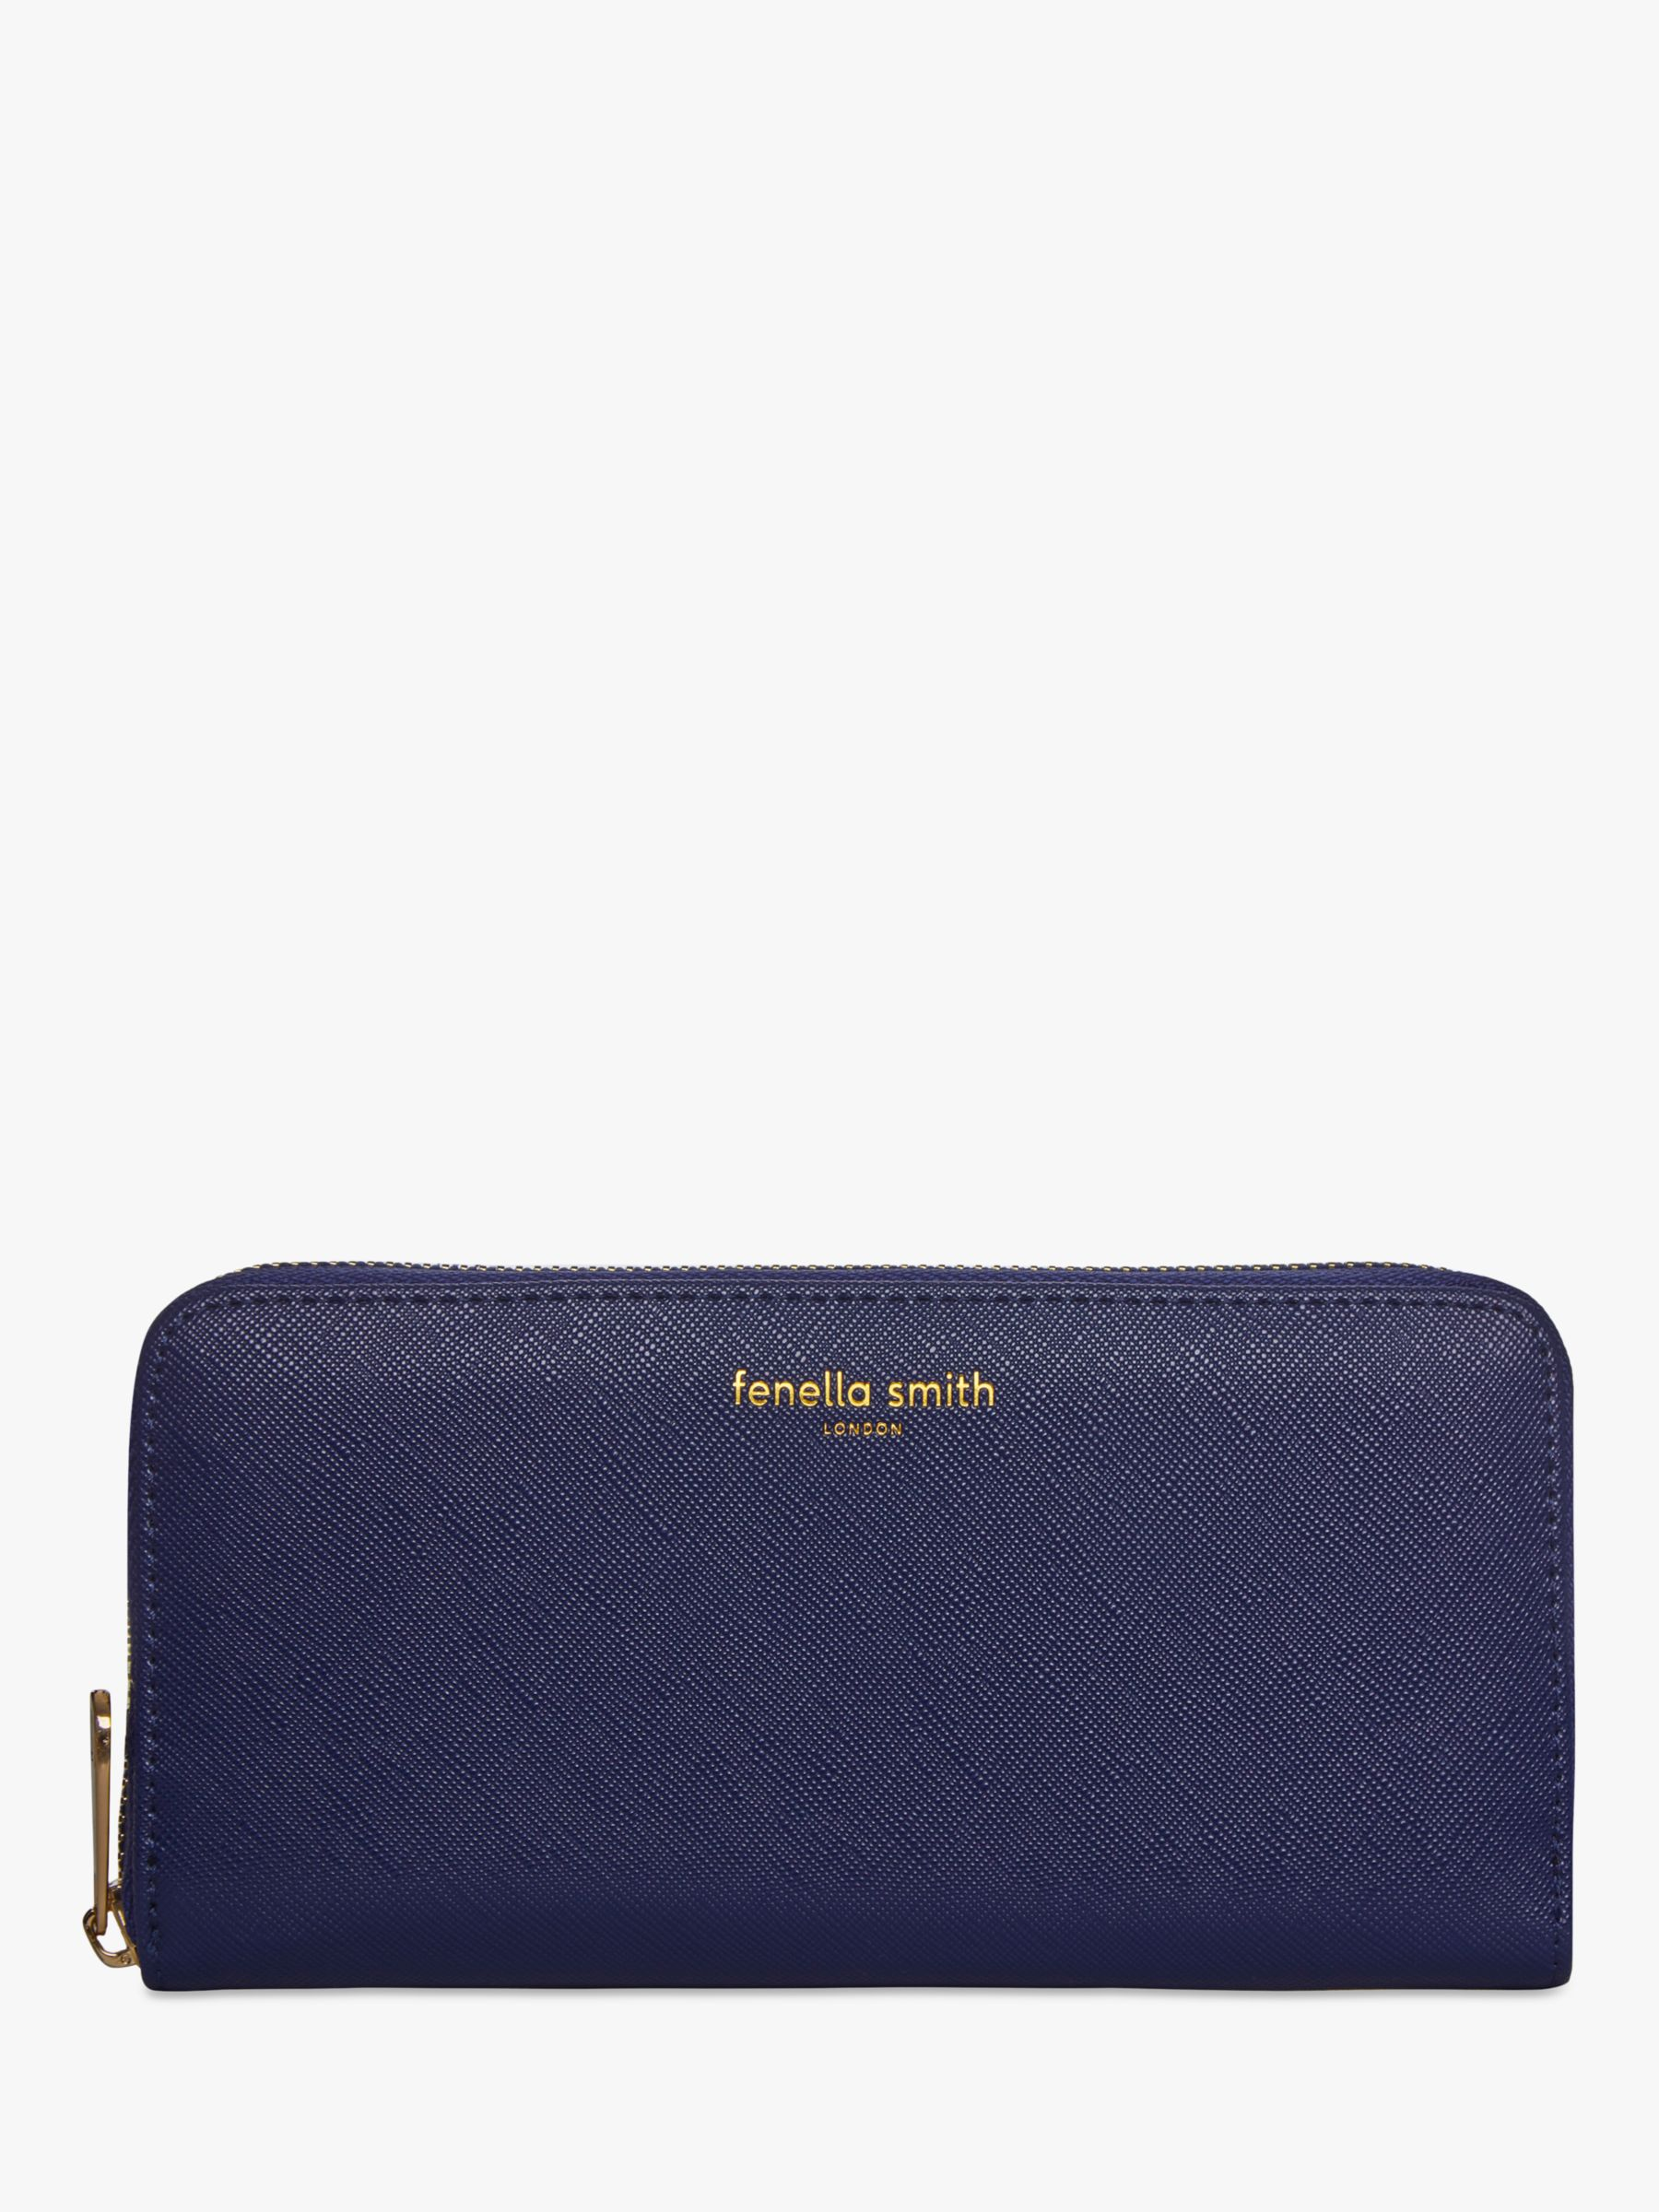 Fenella Smith Fenella Smith Aria Purse, Blue